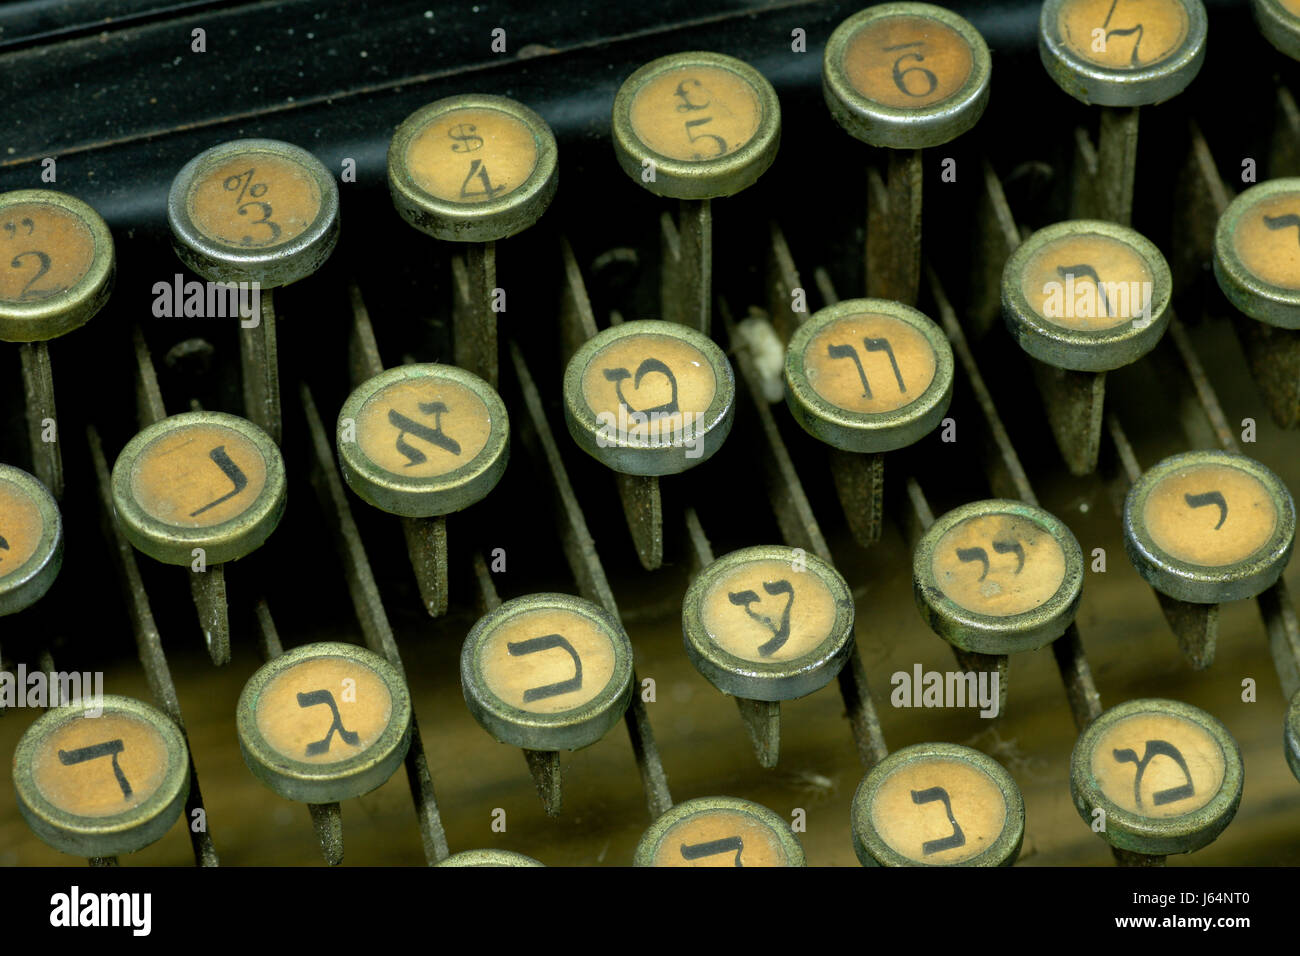 keyboard letters letter language typewriter hebrew old historical space antique - Stock Image